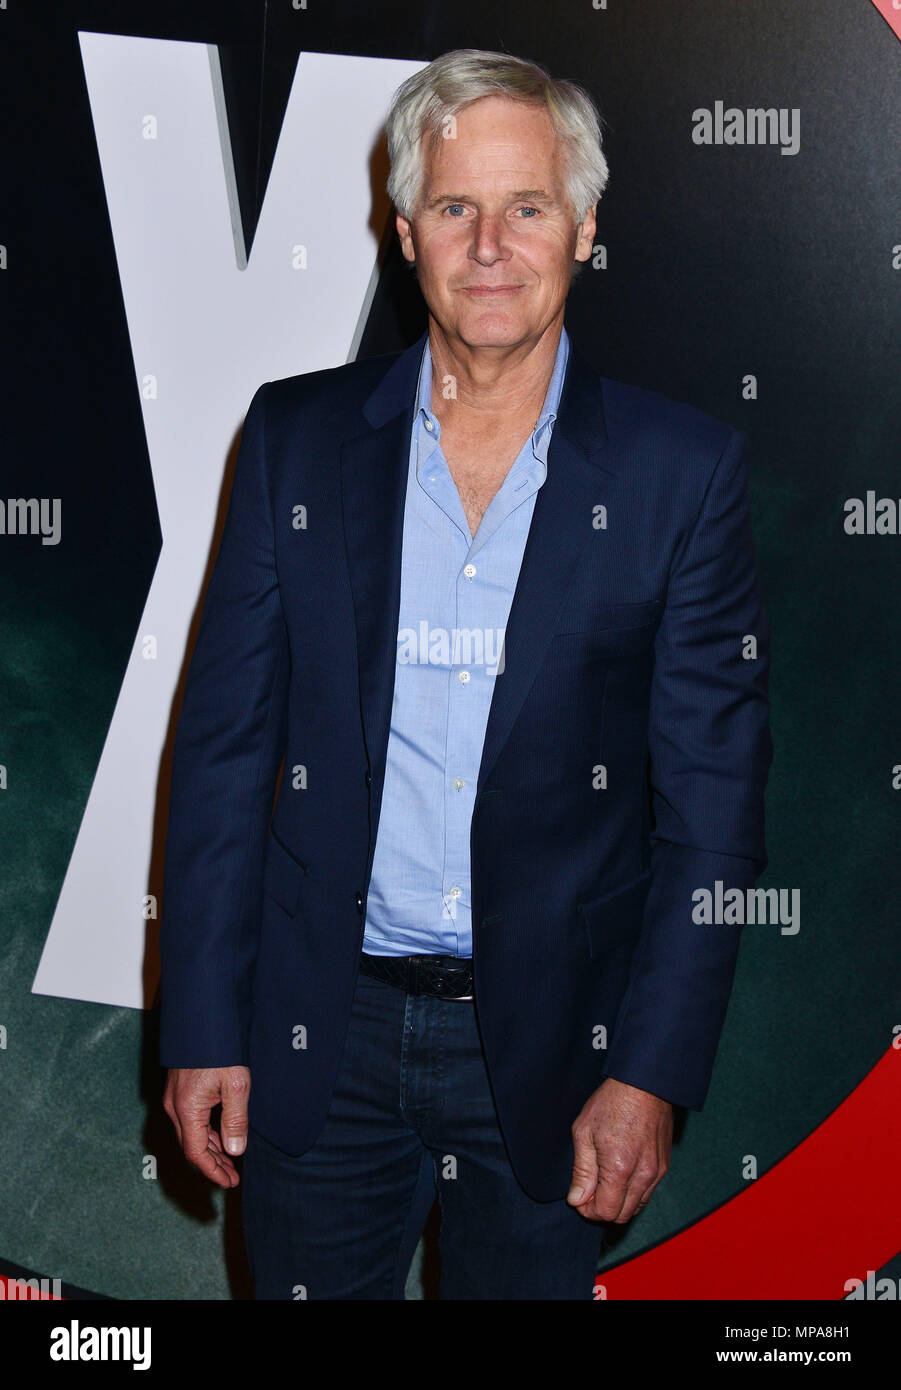 Chris Cater  at The X-Files Premiere at California Science Center in Los Angeles, CA  January 12, 2016.Chris Cater ------------- Red Carpet Event, Vertical, USA, Film Industry, Celebrities,  Photography, Bestof, Arts Culture and Entertainment, Topix Celebrities fashion /  Vertical, Best of, Event in Hollywood Life - California,  Red Carpet and backstage, USA, Film Industry, Celebrities,  movie celebrities, TV celebrities, Music celebrities, Photography, Bestof, Arts Culture and Entertainment,  Topix, Three Quarters, vertical, one person,, from the year , 2016, inquiry tsuni@Gamma-USA.com - Stock Image